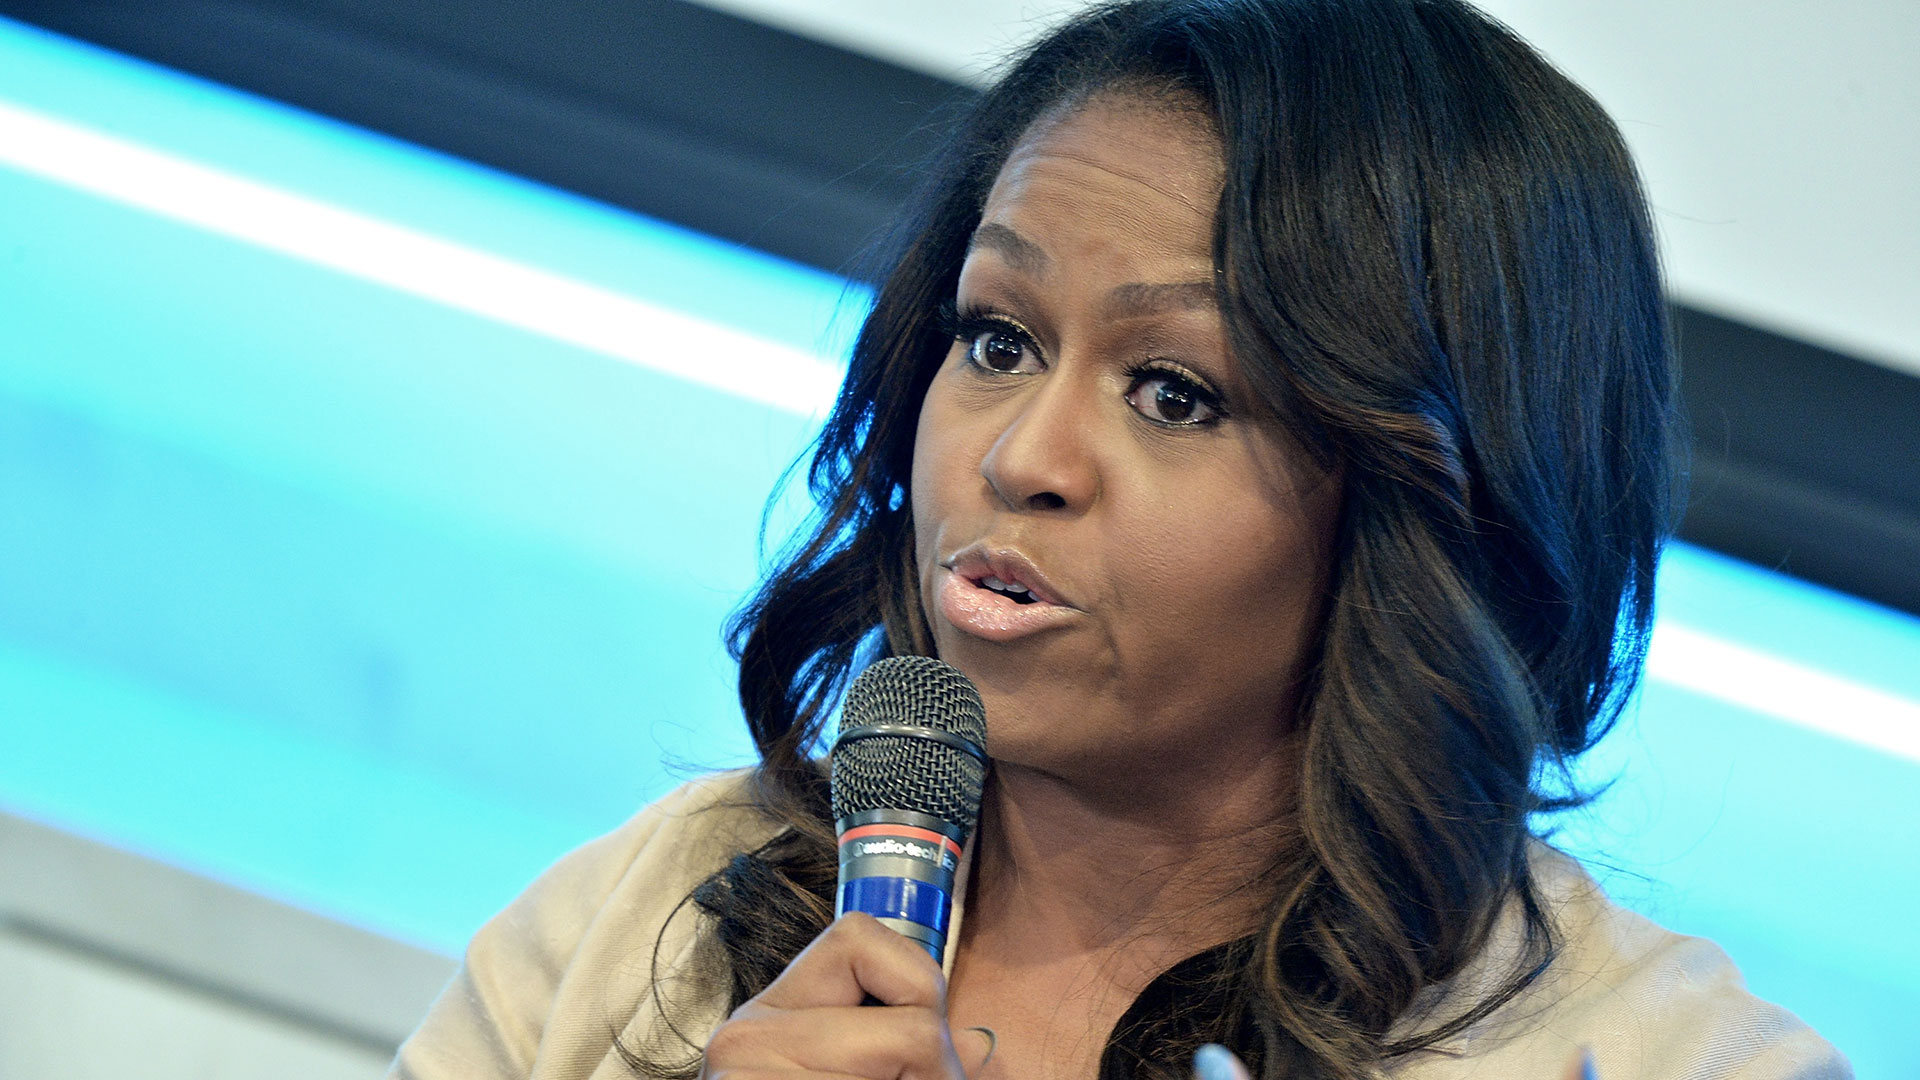 Michelle Obama Speaking Into Microphone Image Shannon Finney Getty Images